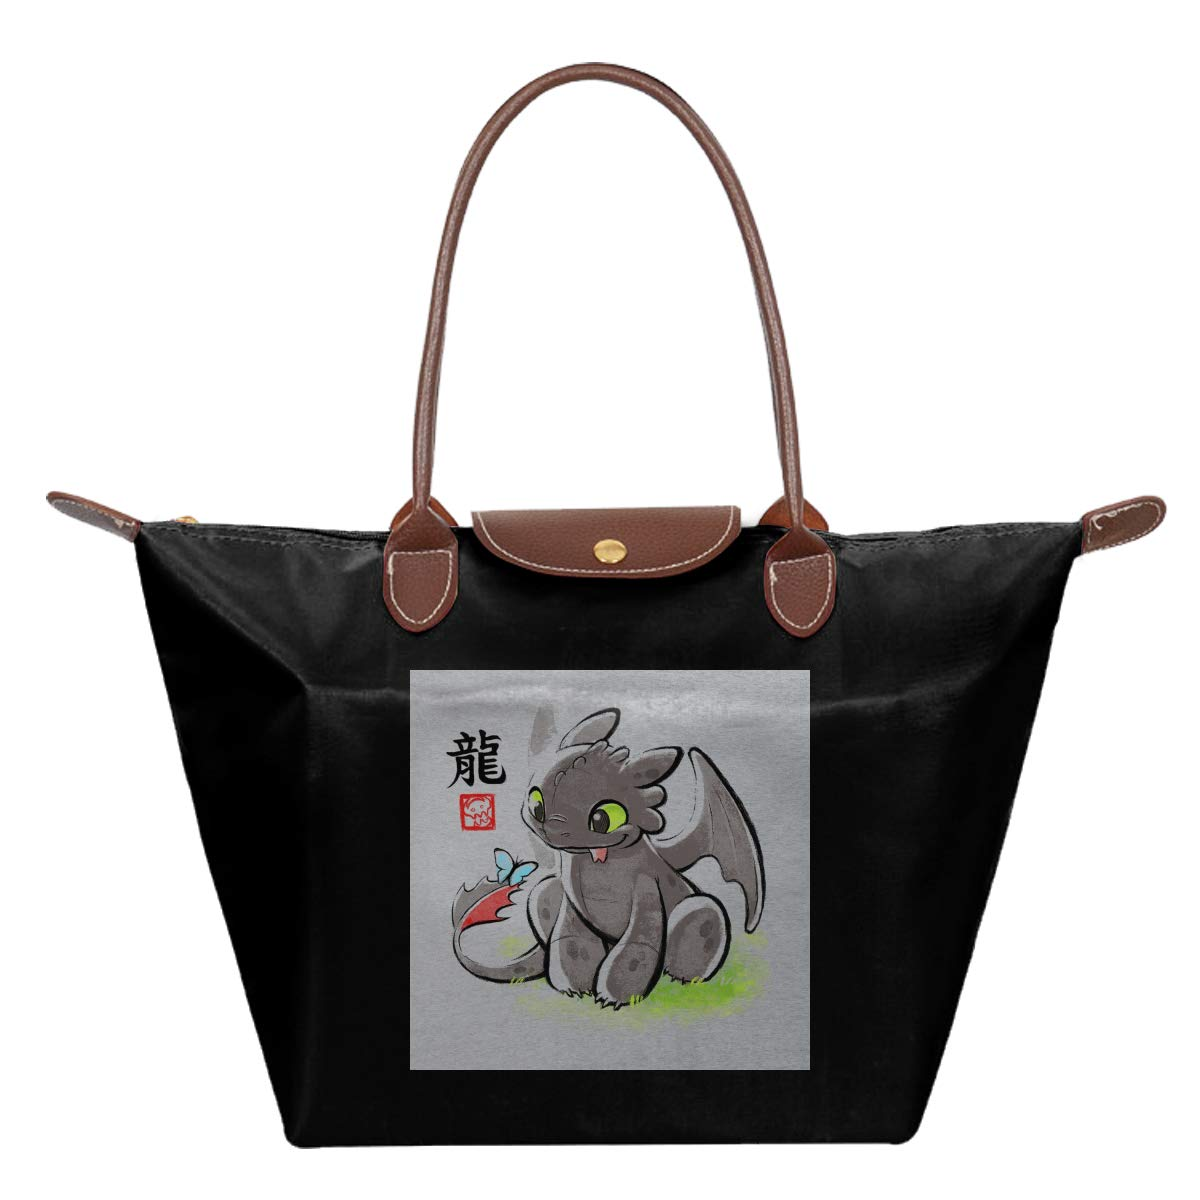 How To Train Your Dragon Toothless Ink Waterproof Leather Folded Messenger Nylon Bag Travel Tote Hopping Folding School Handbags